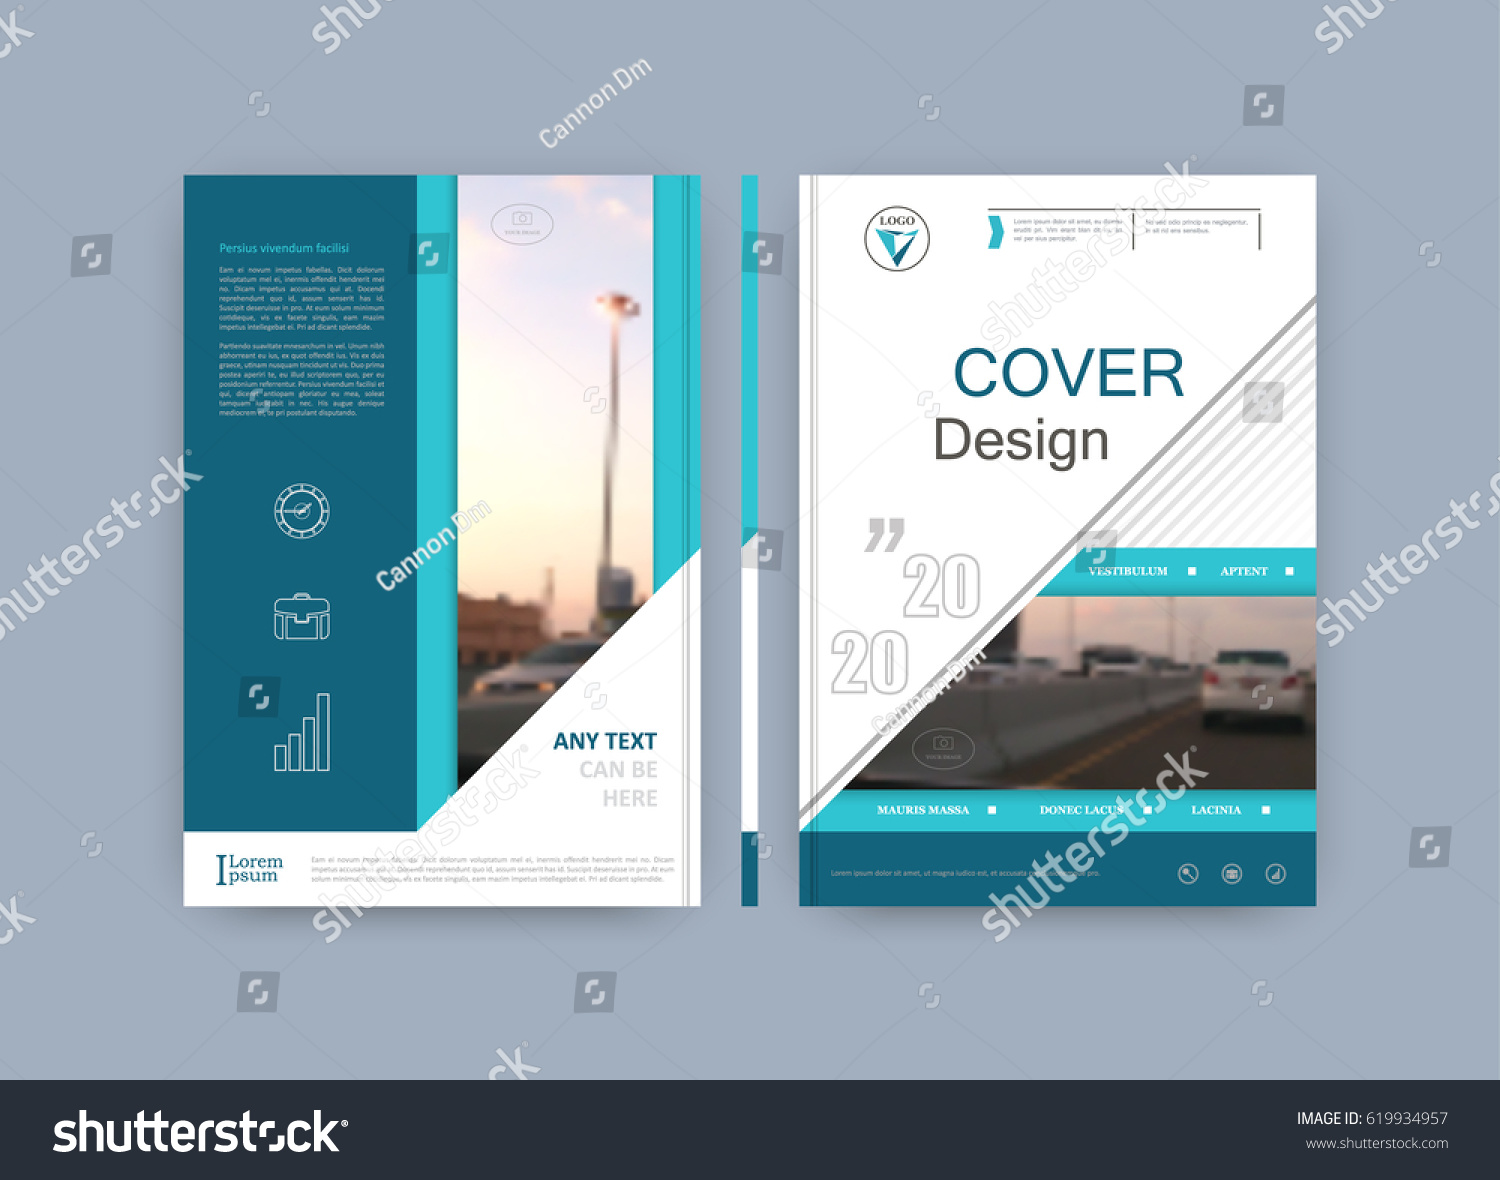 Book Cover Illustration Composition : Brochure template book cover design title stock vector